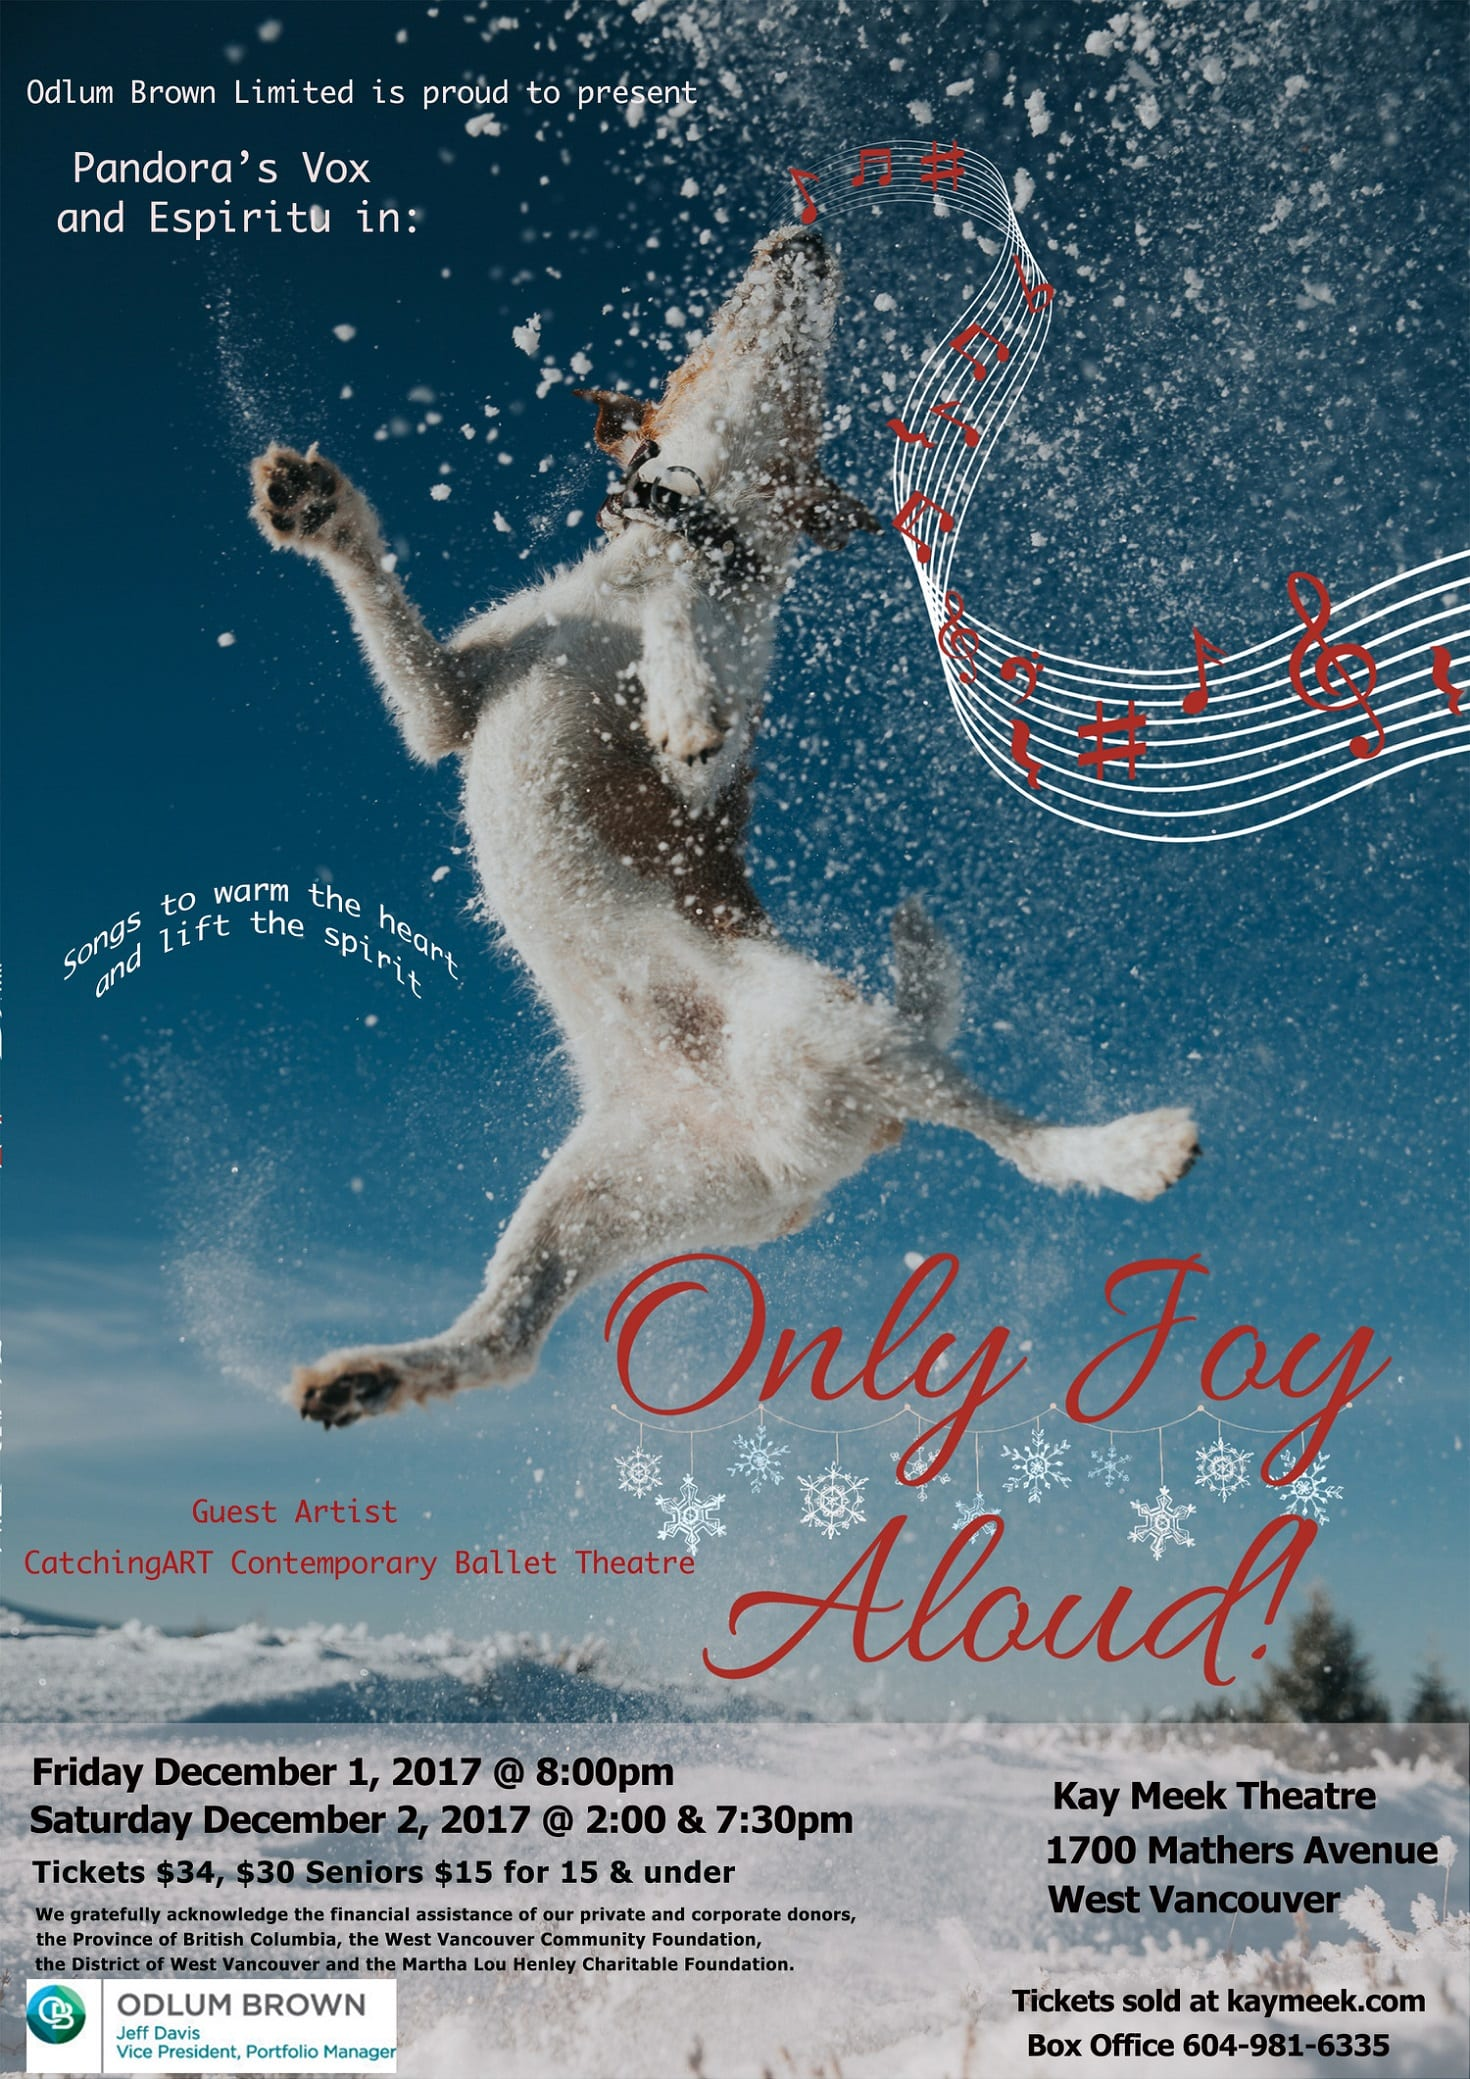 Only Joy Aloud! Presented by Pandora's Vox & Espiritu Vocal Ensembles at the Kay Meek Centre West Vancouver